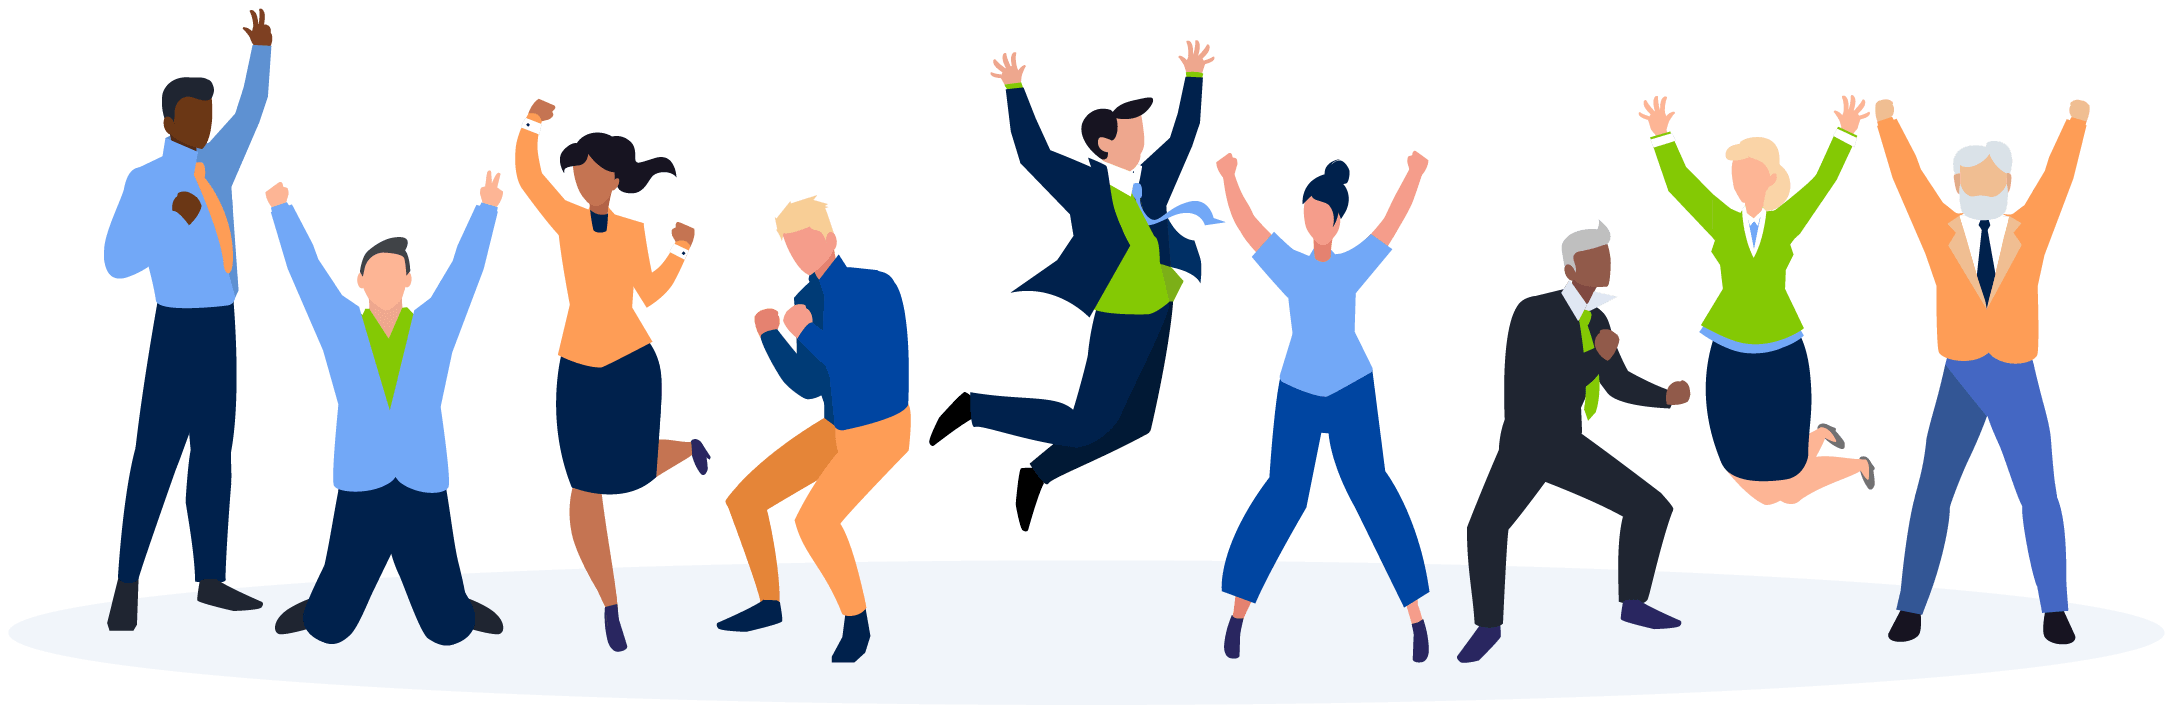 Happy group of employees illustration